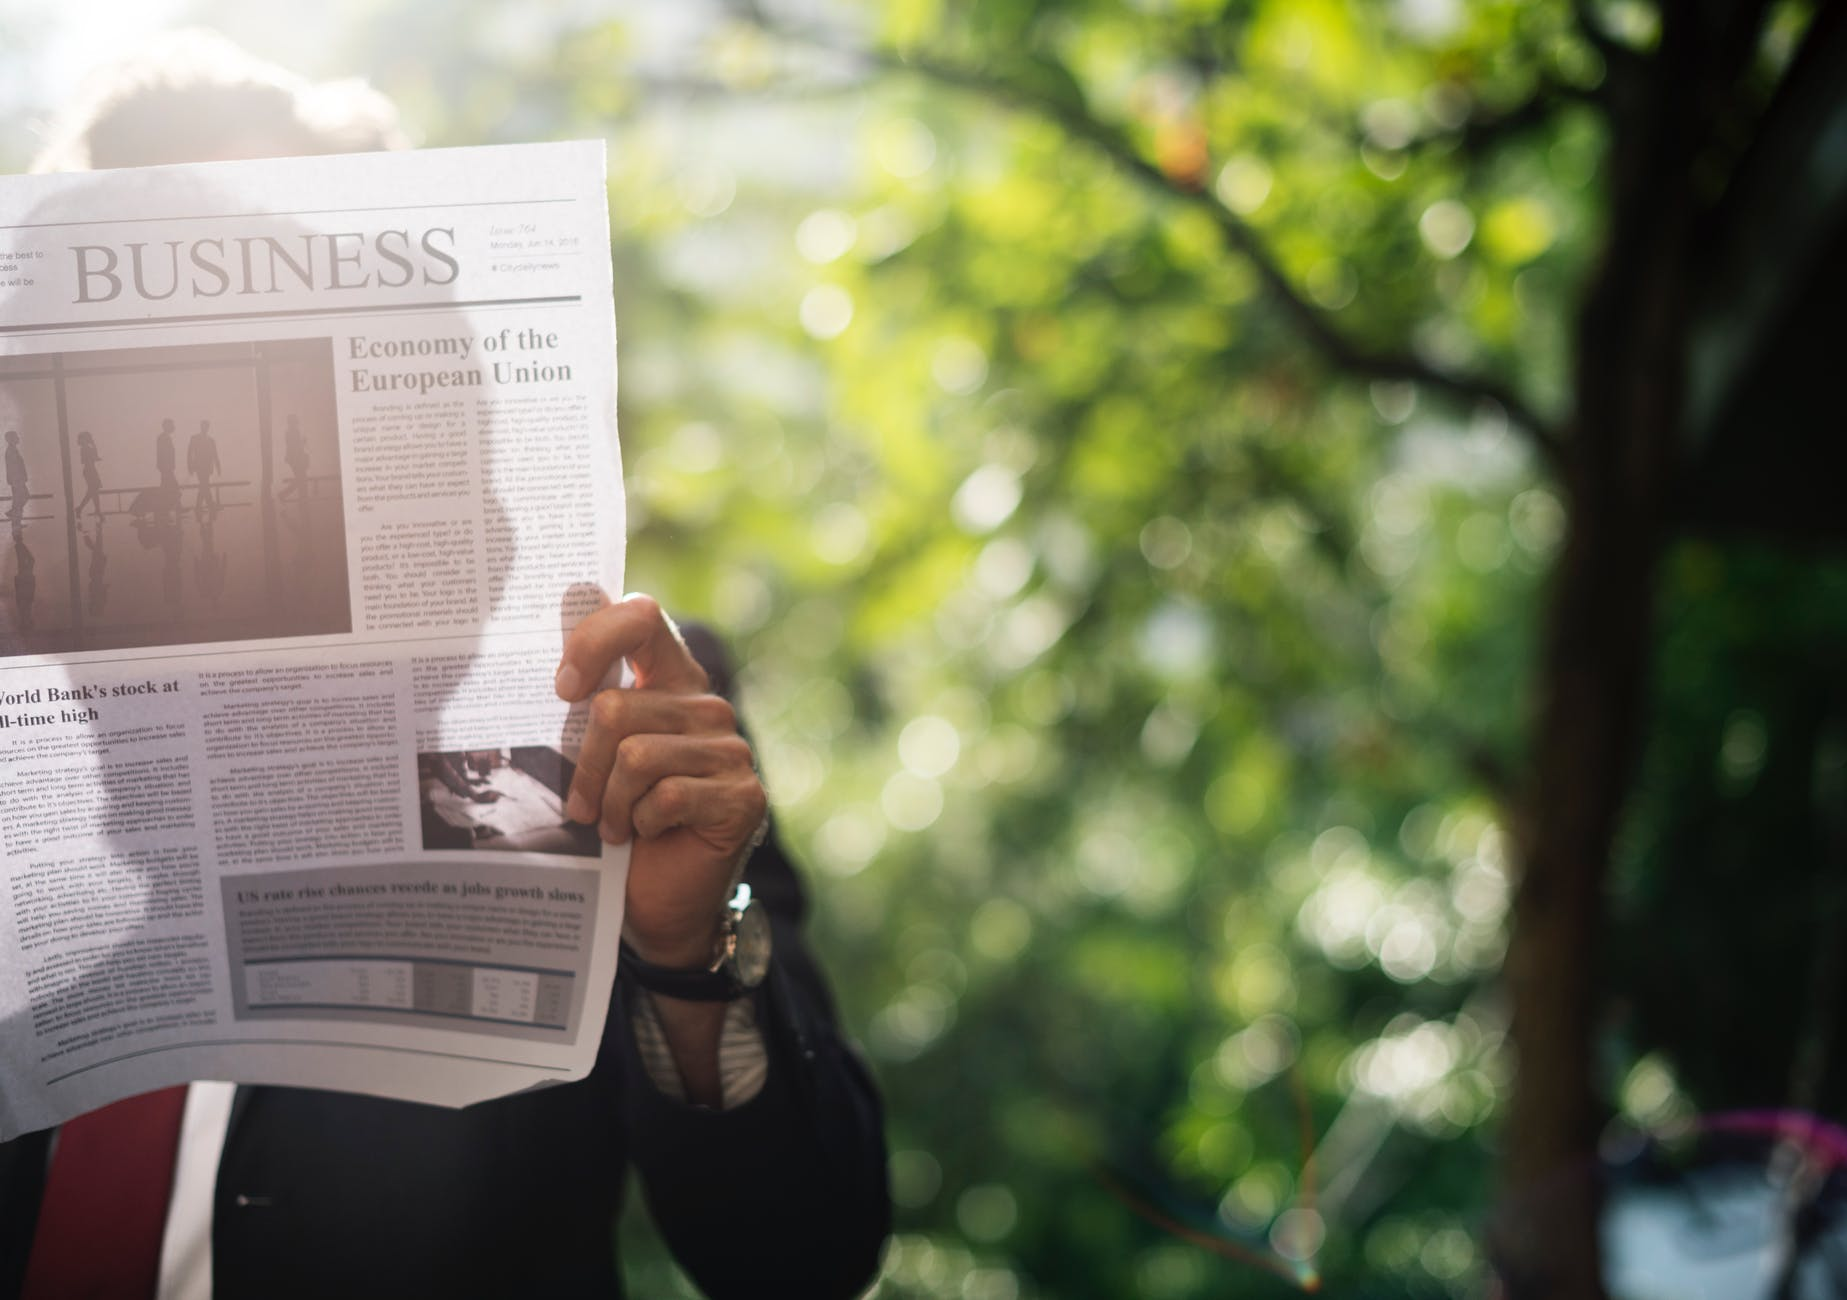 The Power of Press - Real Estate Marketing